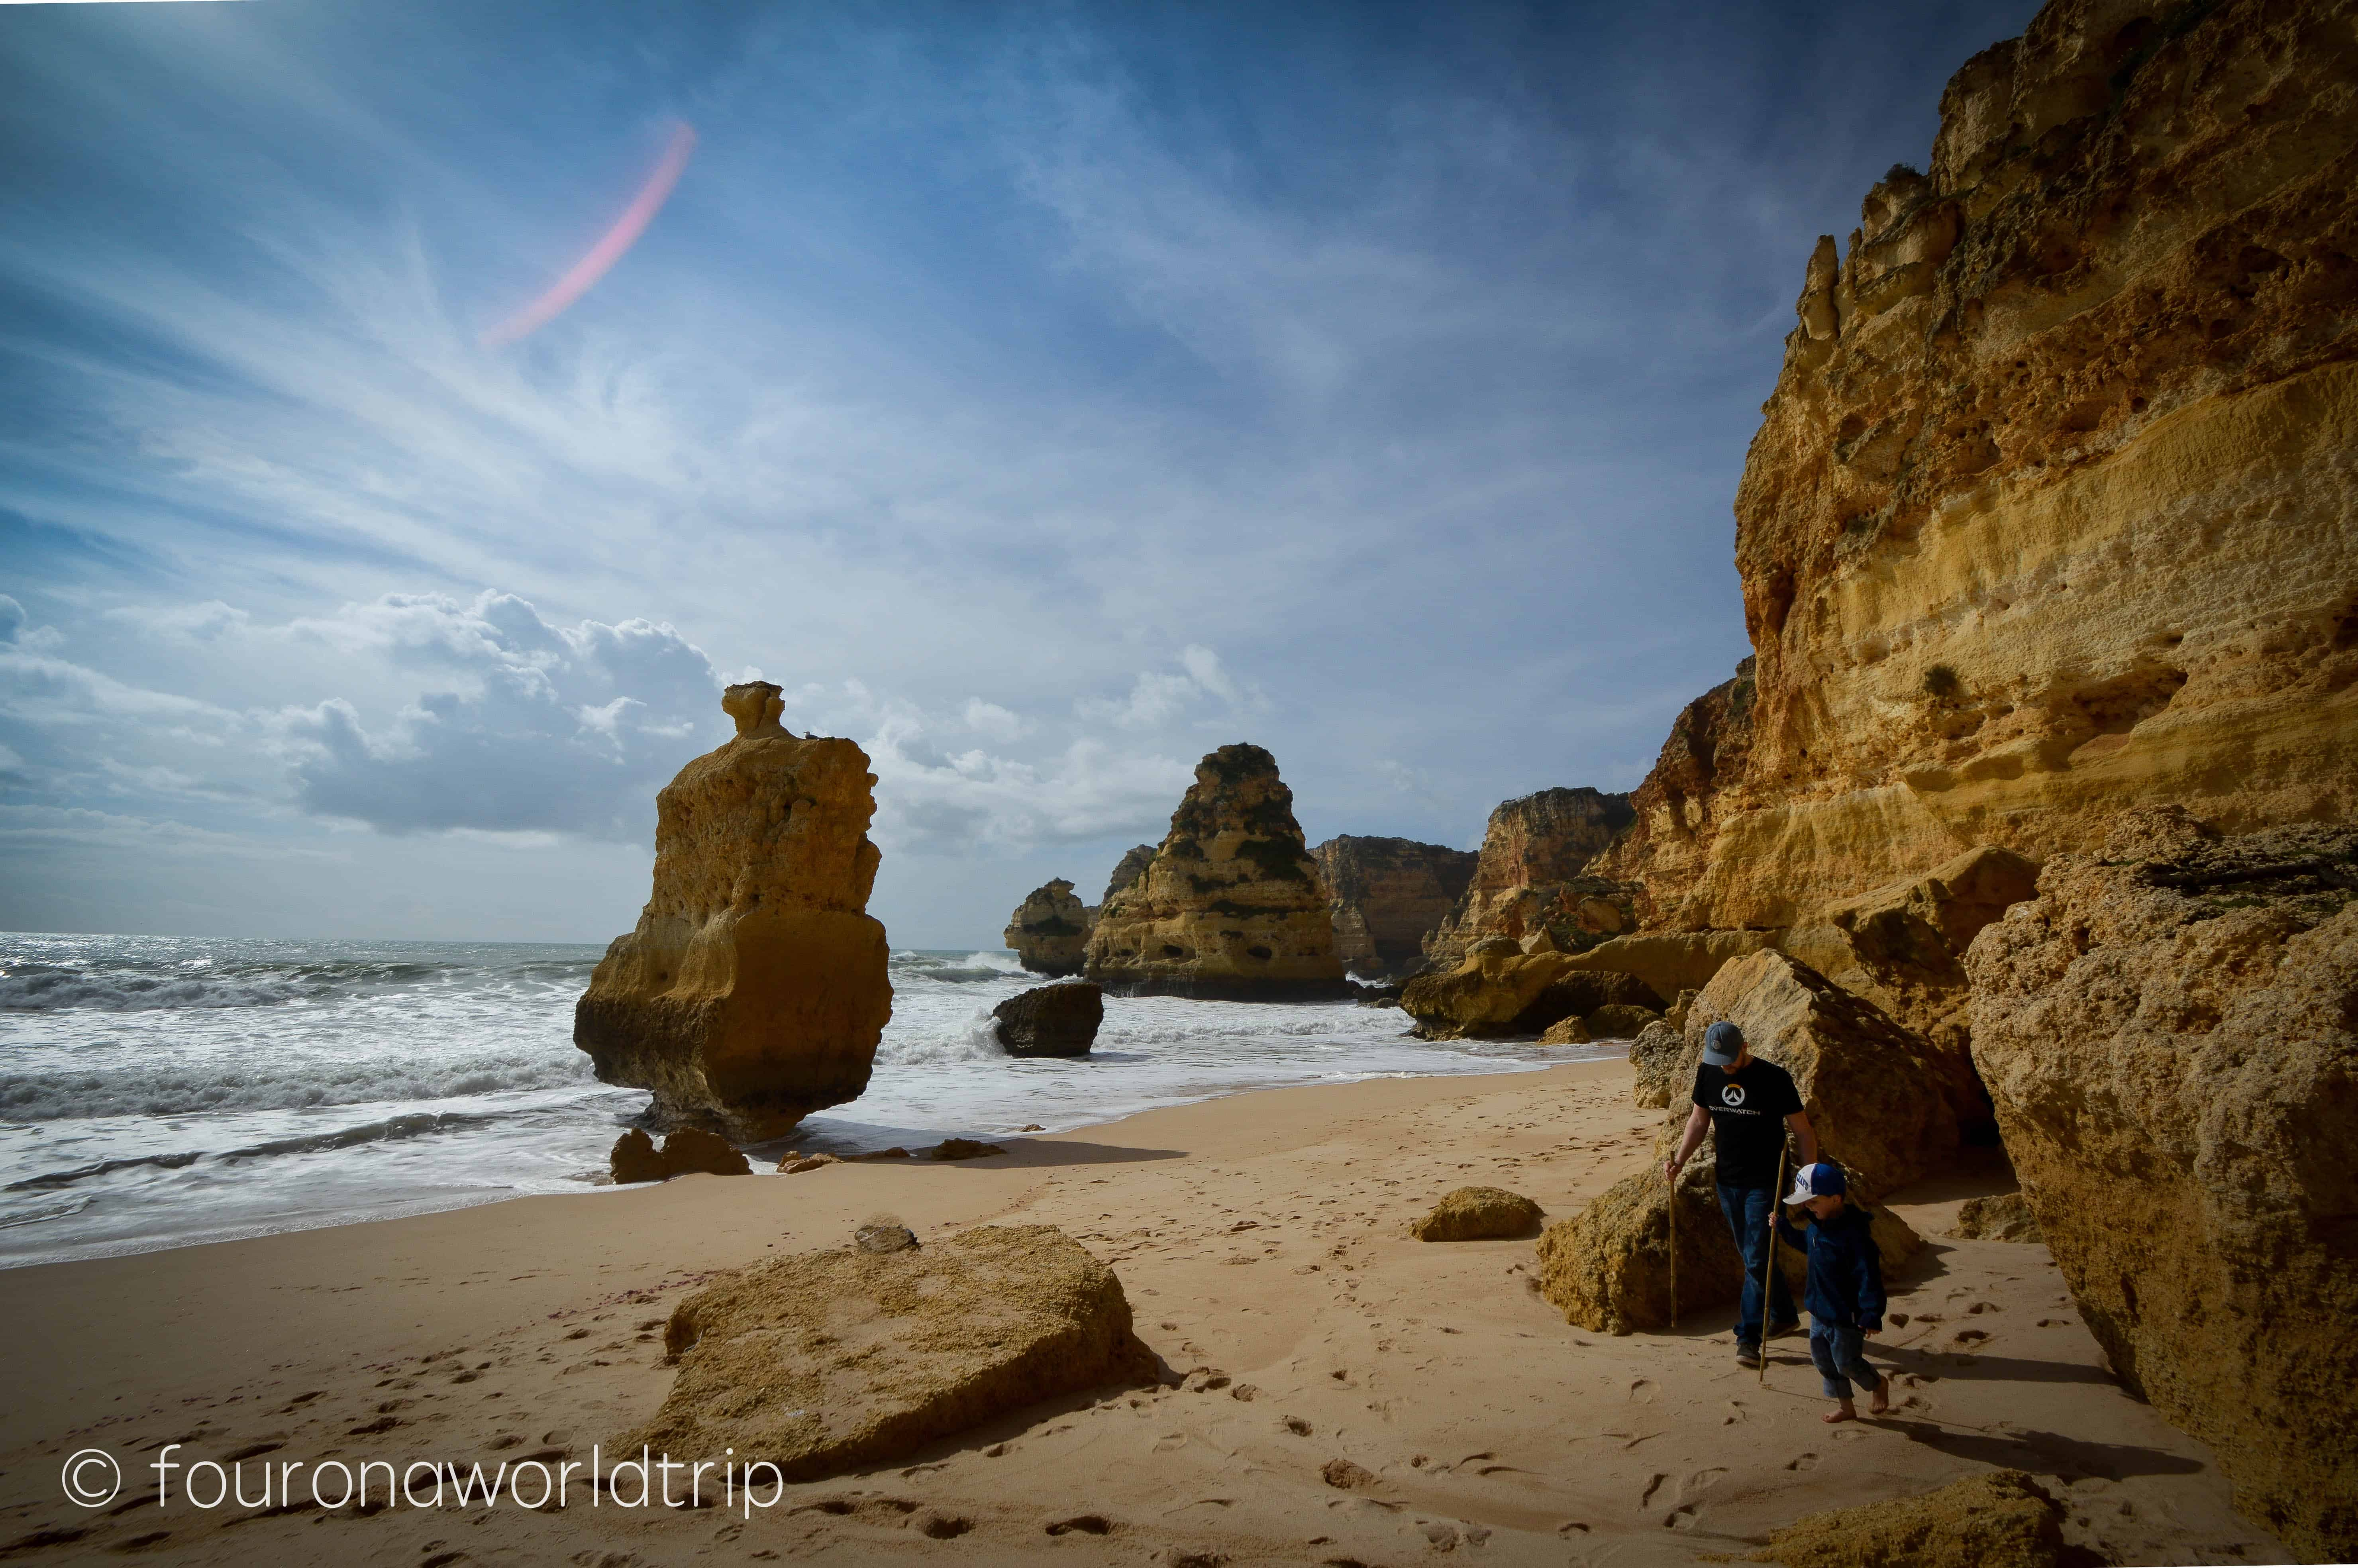 Exploring Praia de Marinha – the most famous rock formations in Algarve